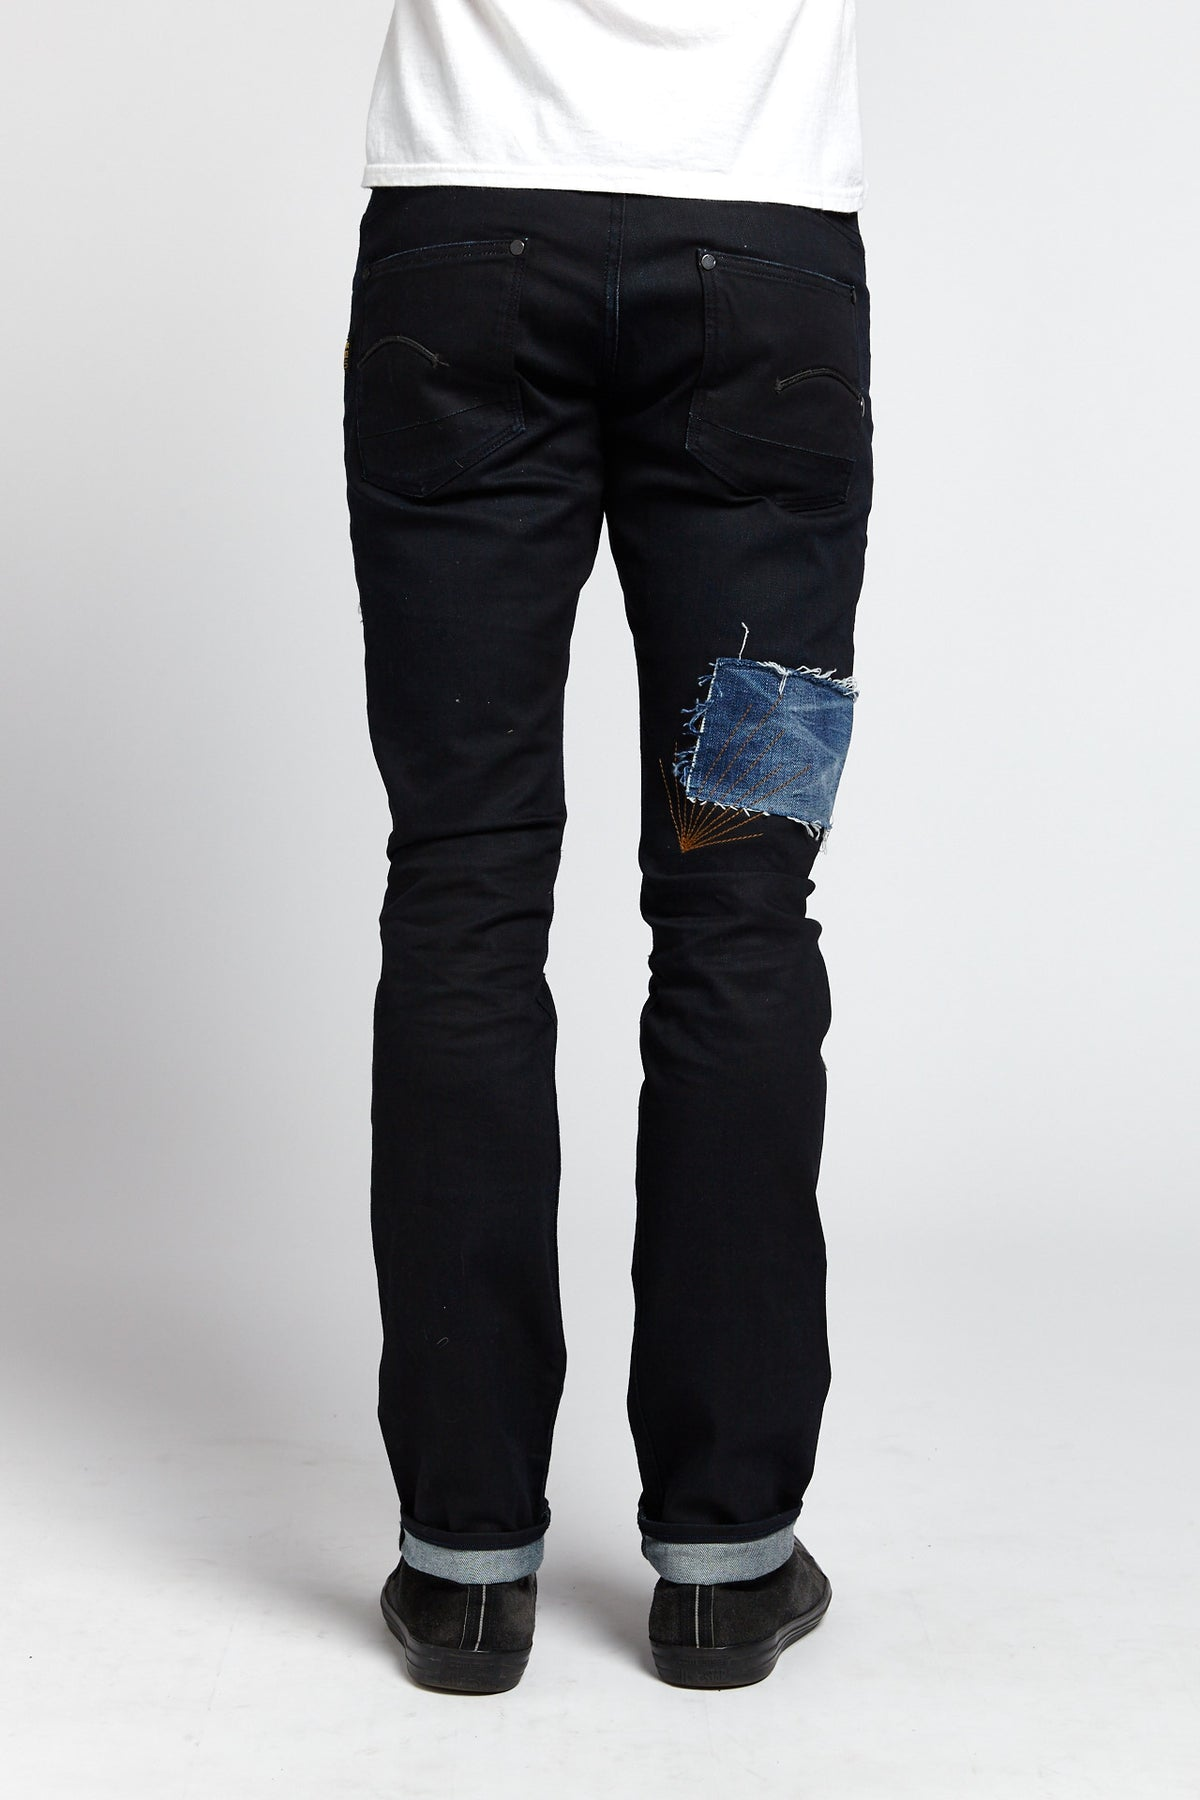 G-STAR RAW RECONSTRUCTED PATCHWORK COTTON BLACK 33 W JEANS-BOTTOMS-Mundane Official-33-BLACK-Mundane Official